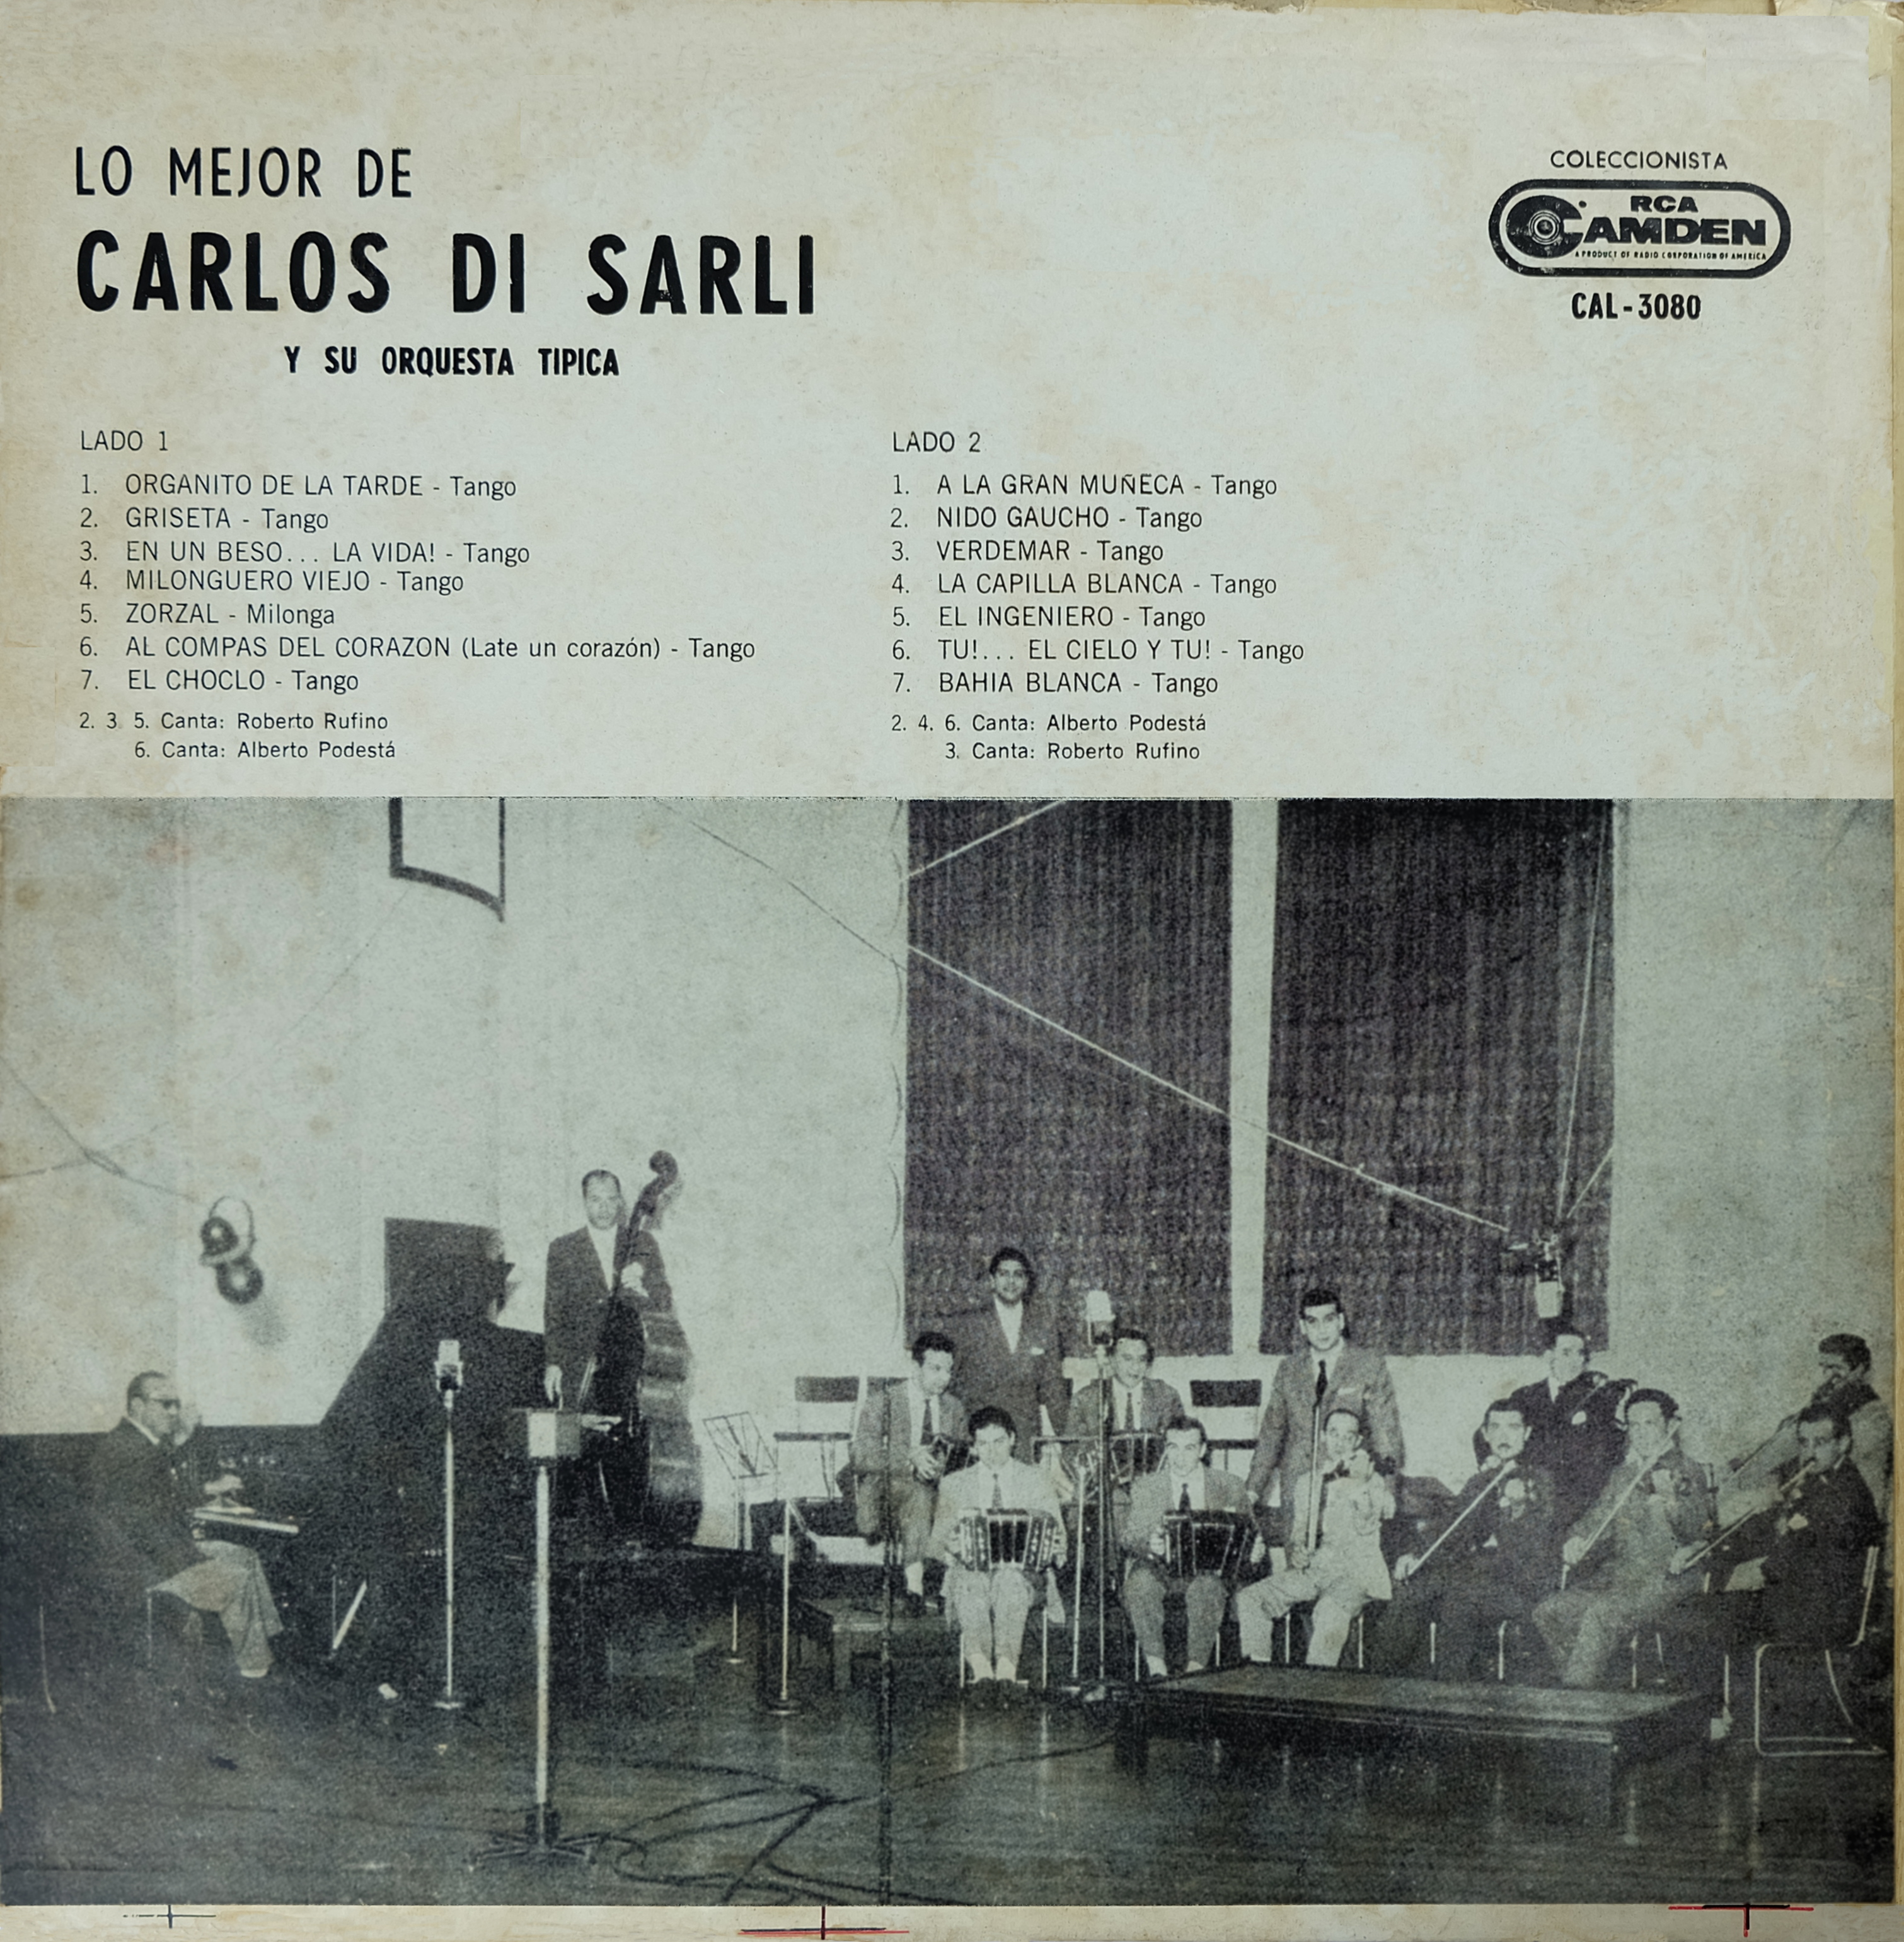 Tech Talk Jens Ingos Tango Dj House Of Buenos Aires Is This Diagram For The Dance Steps Other Day I Had Mysterious Carlos Di Sarli Rca Vinyl Lp In My Hands Because A Picture On Back Cover Which Doesnt Seem To Be